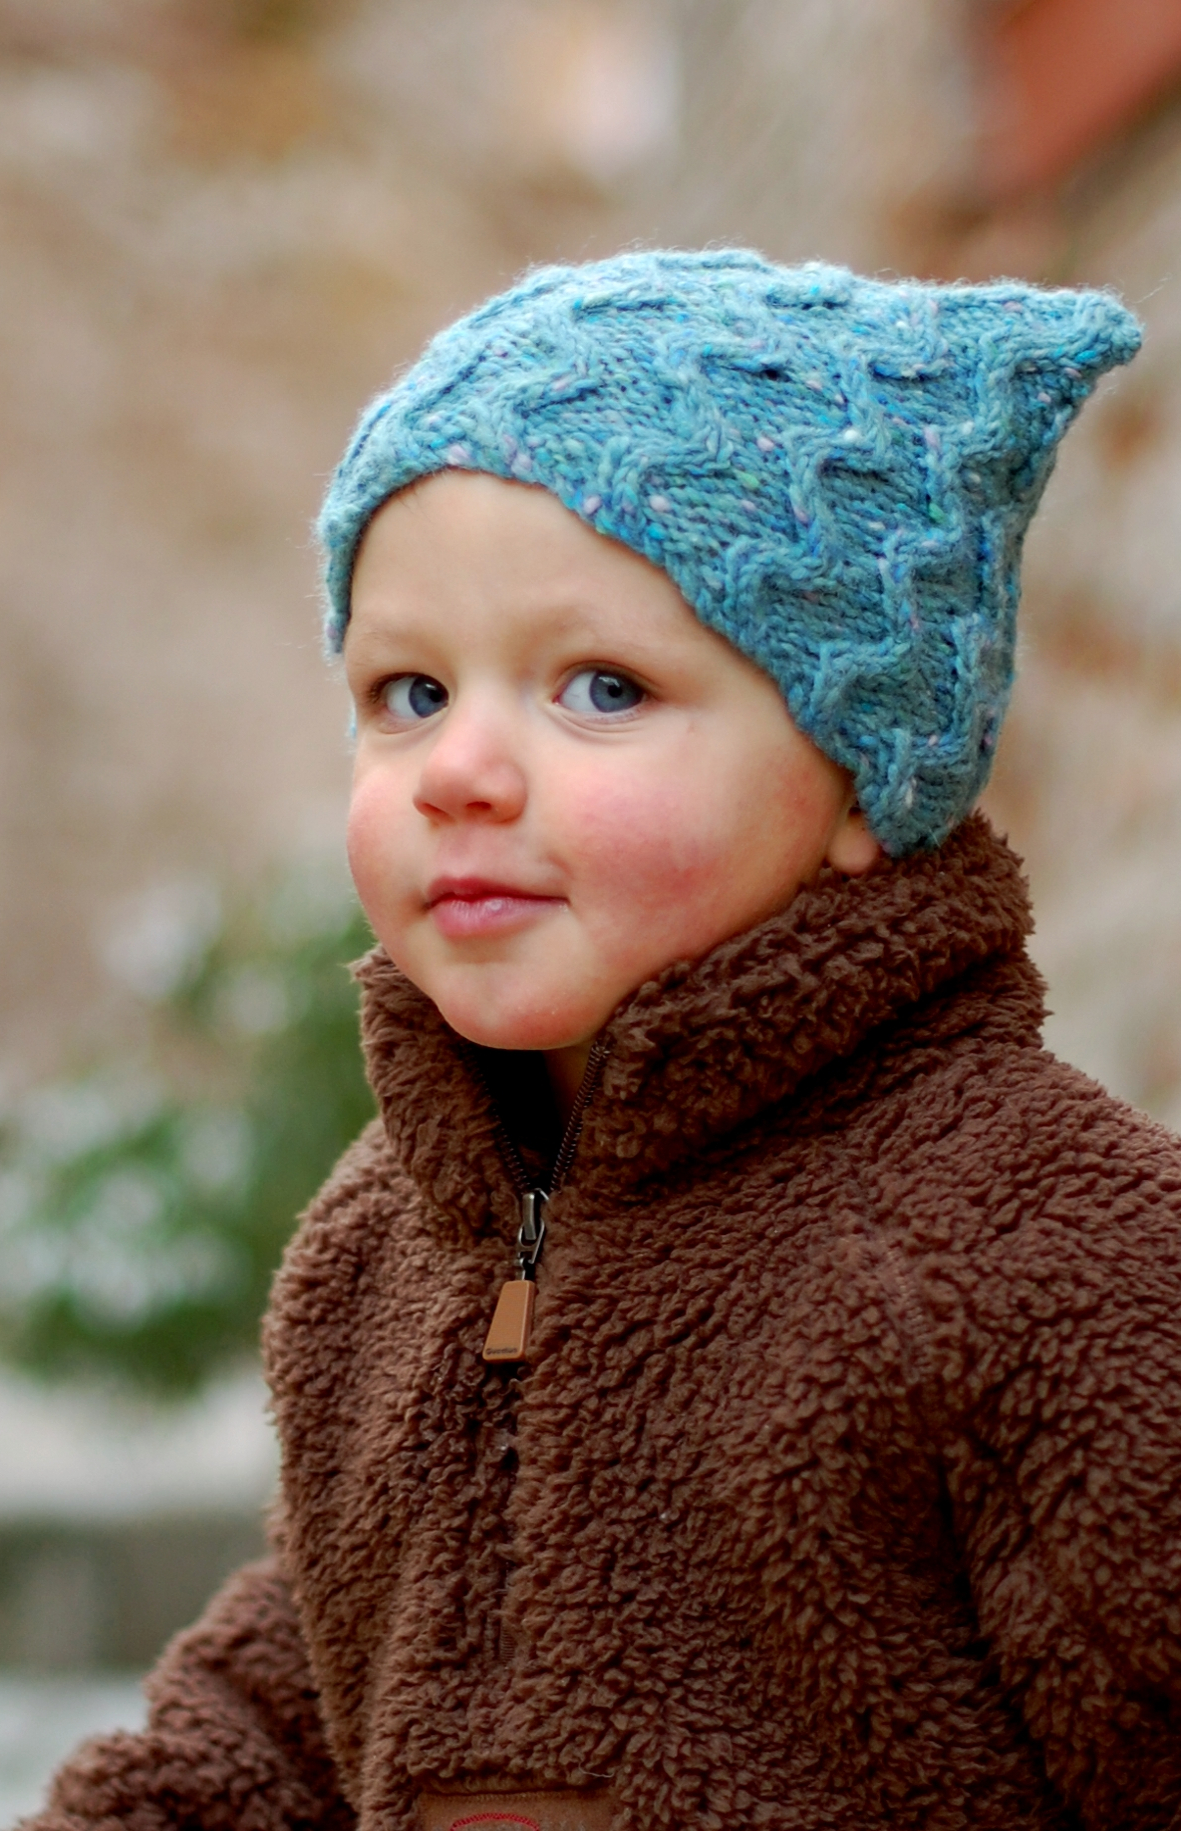 Tinker cabled cap knitting pattern for kids